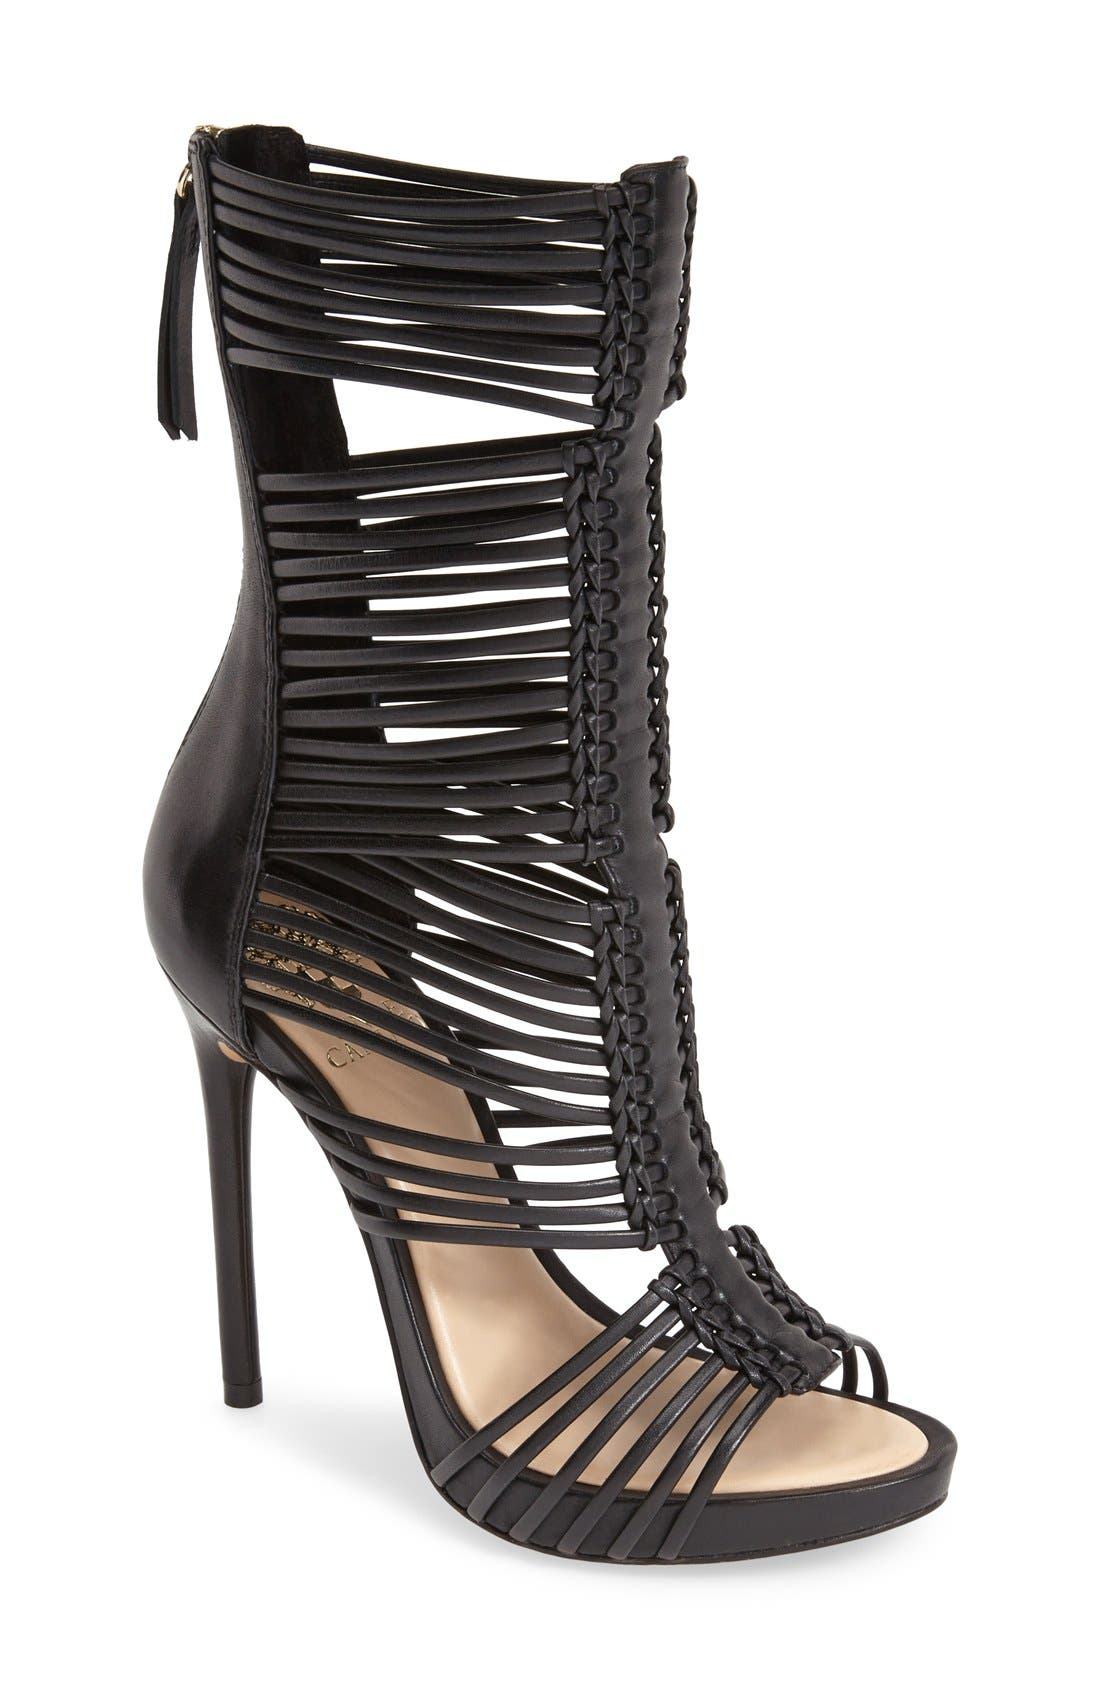 Alternate Image 1 Selected - Vince Camuto 'Barbara' Strappy Caged Leather Sandal (Women)